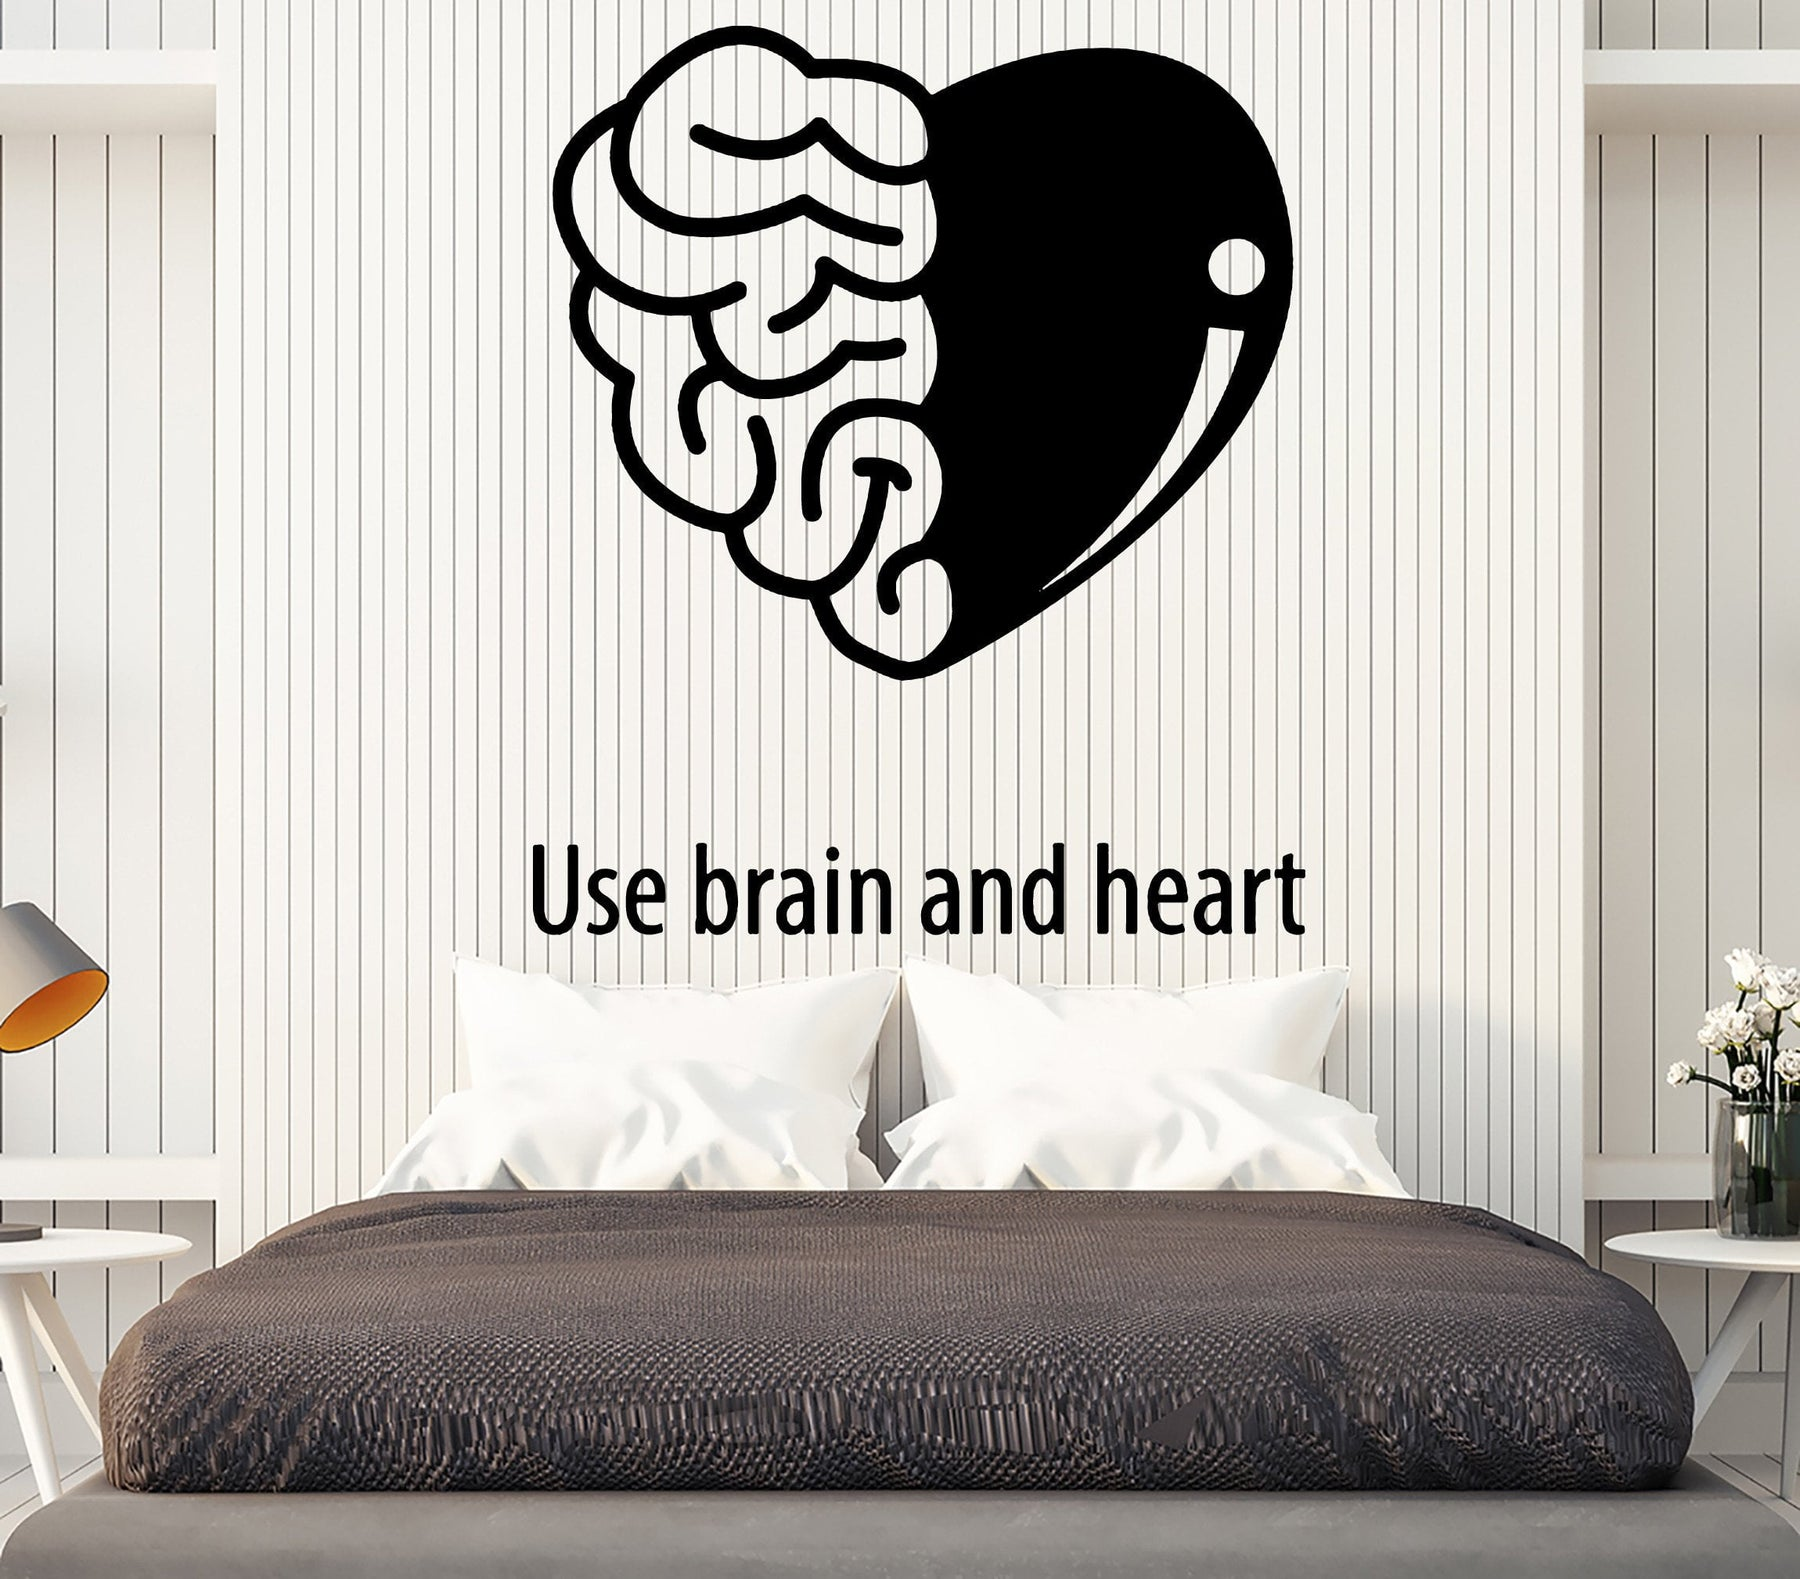 Vinyl Decal Wall Sticker Quote Use Brain And Heart Living Room Decor